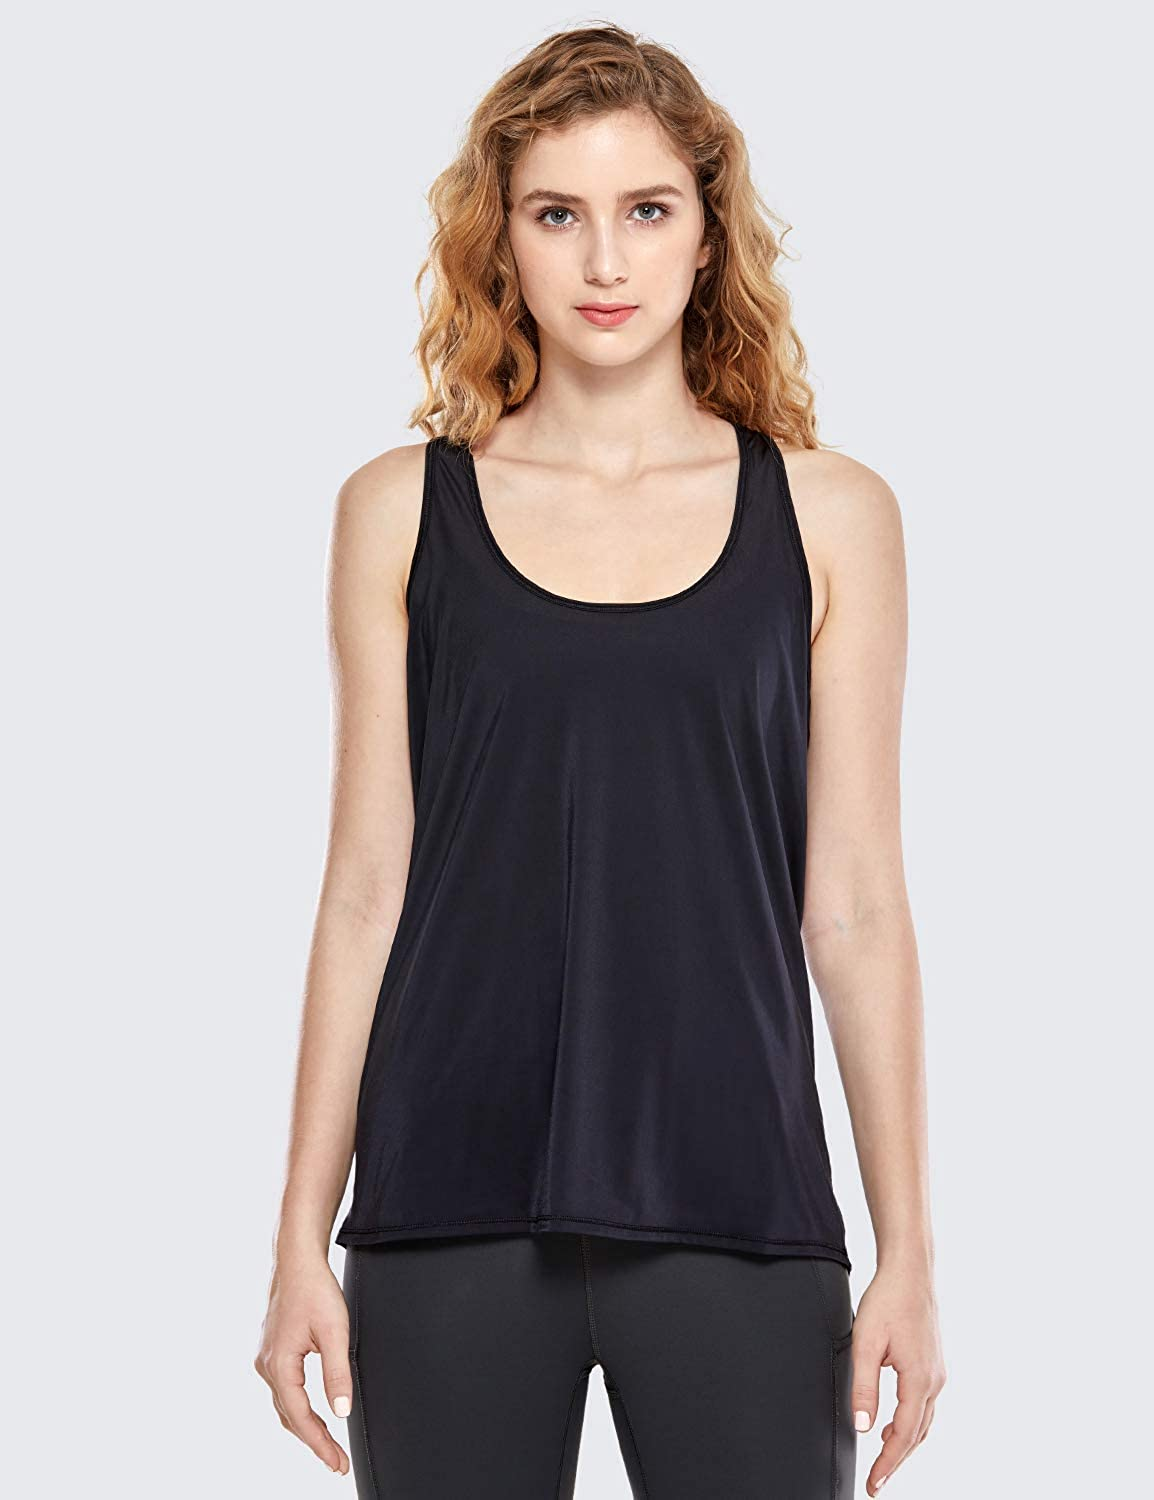 CRZ YOGA Womens Activewear Tops Mesh Workout Racerback Lightweight Sculpt Tank